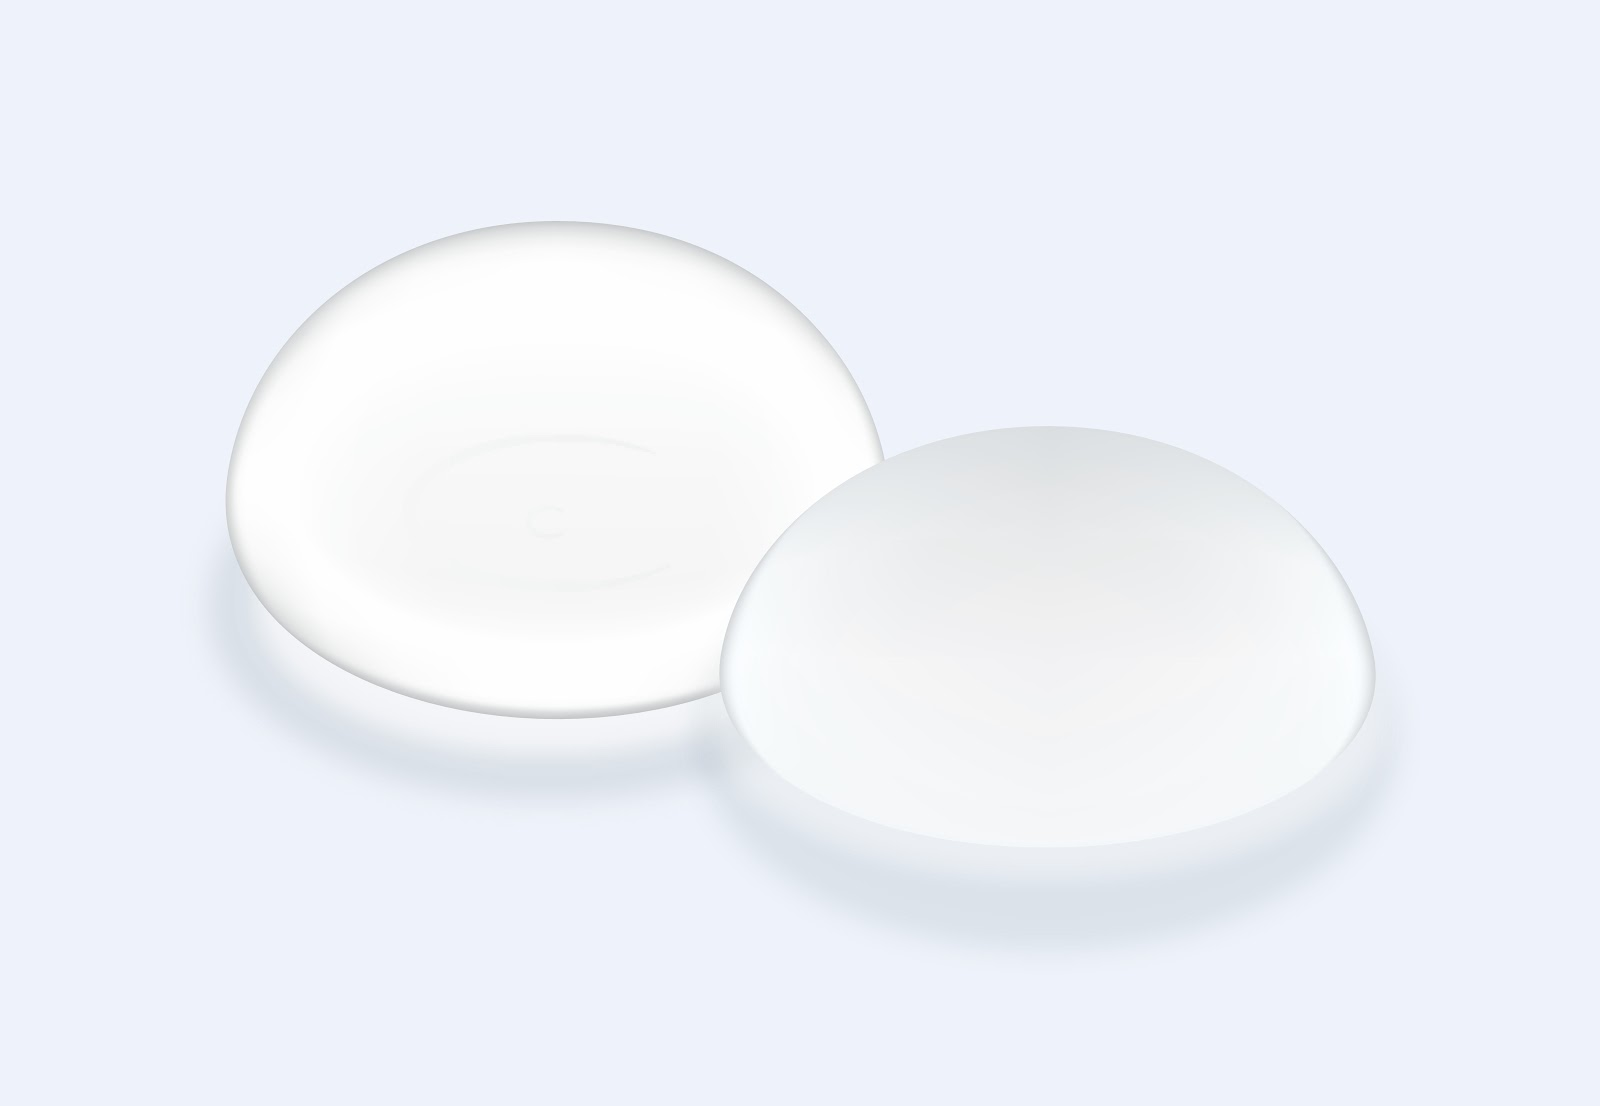 Drawing of two breast implants side by side on a blue-gray background.